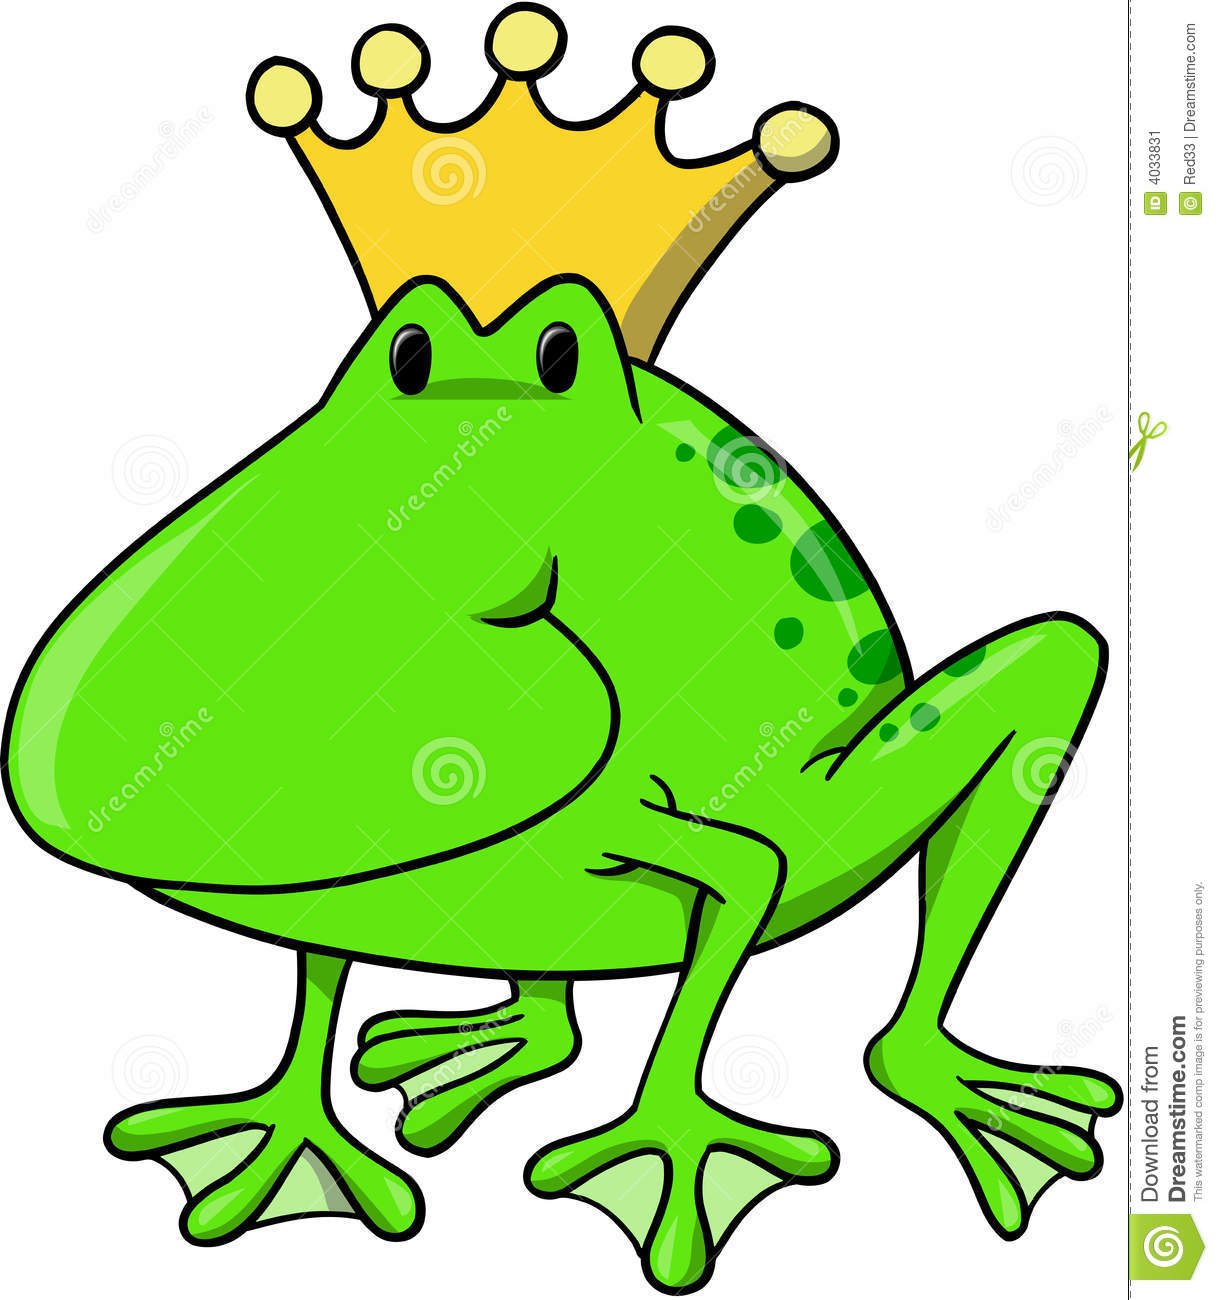 Frog King Vector Illustration Stock Image.